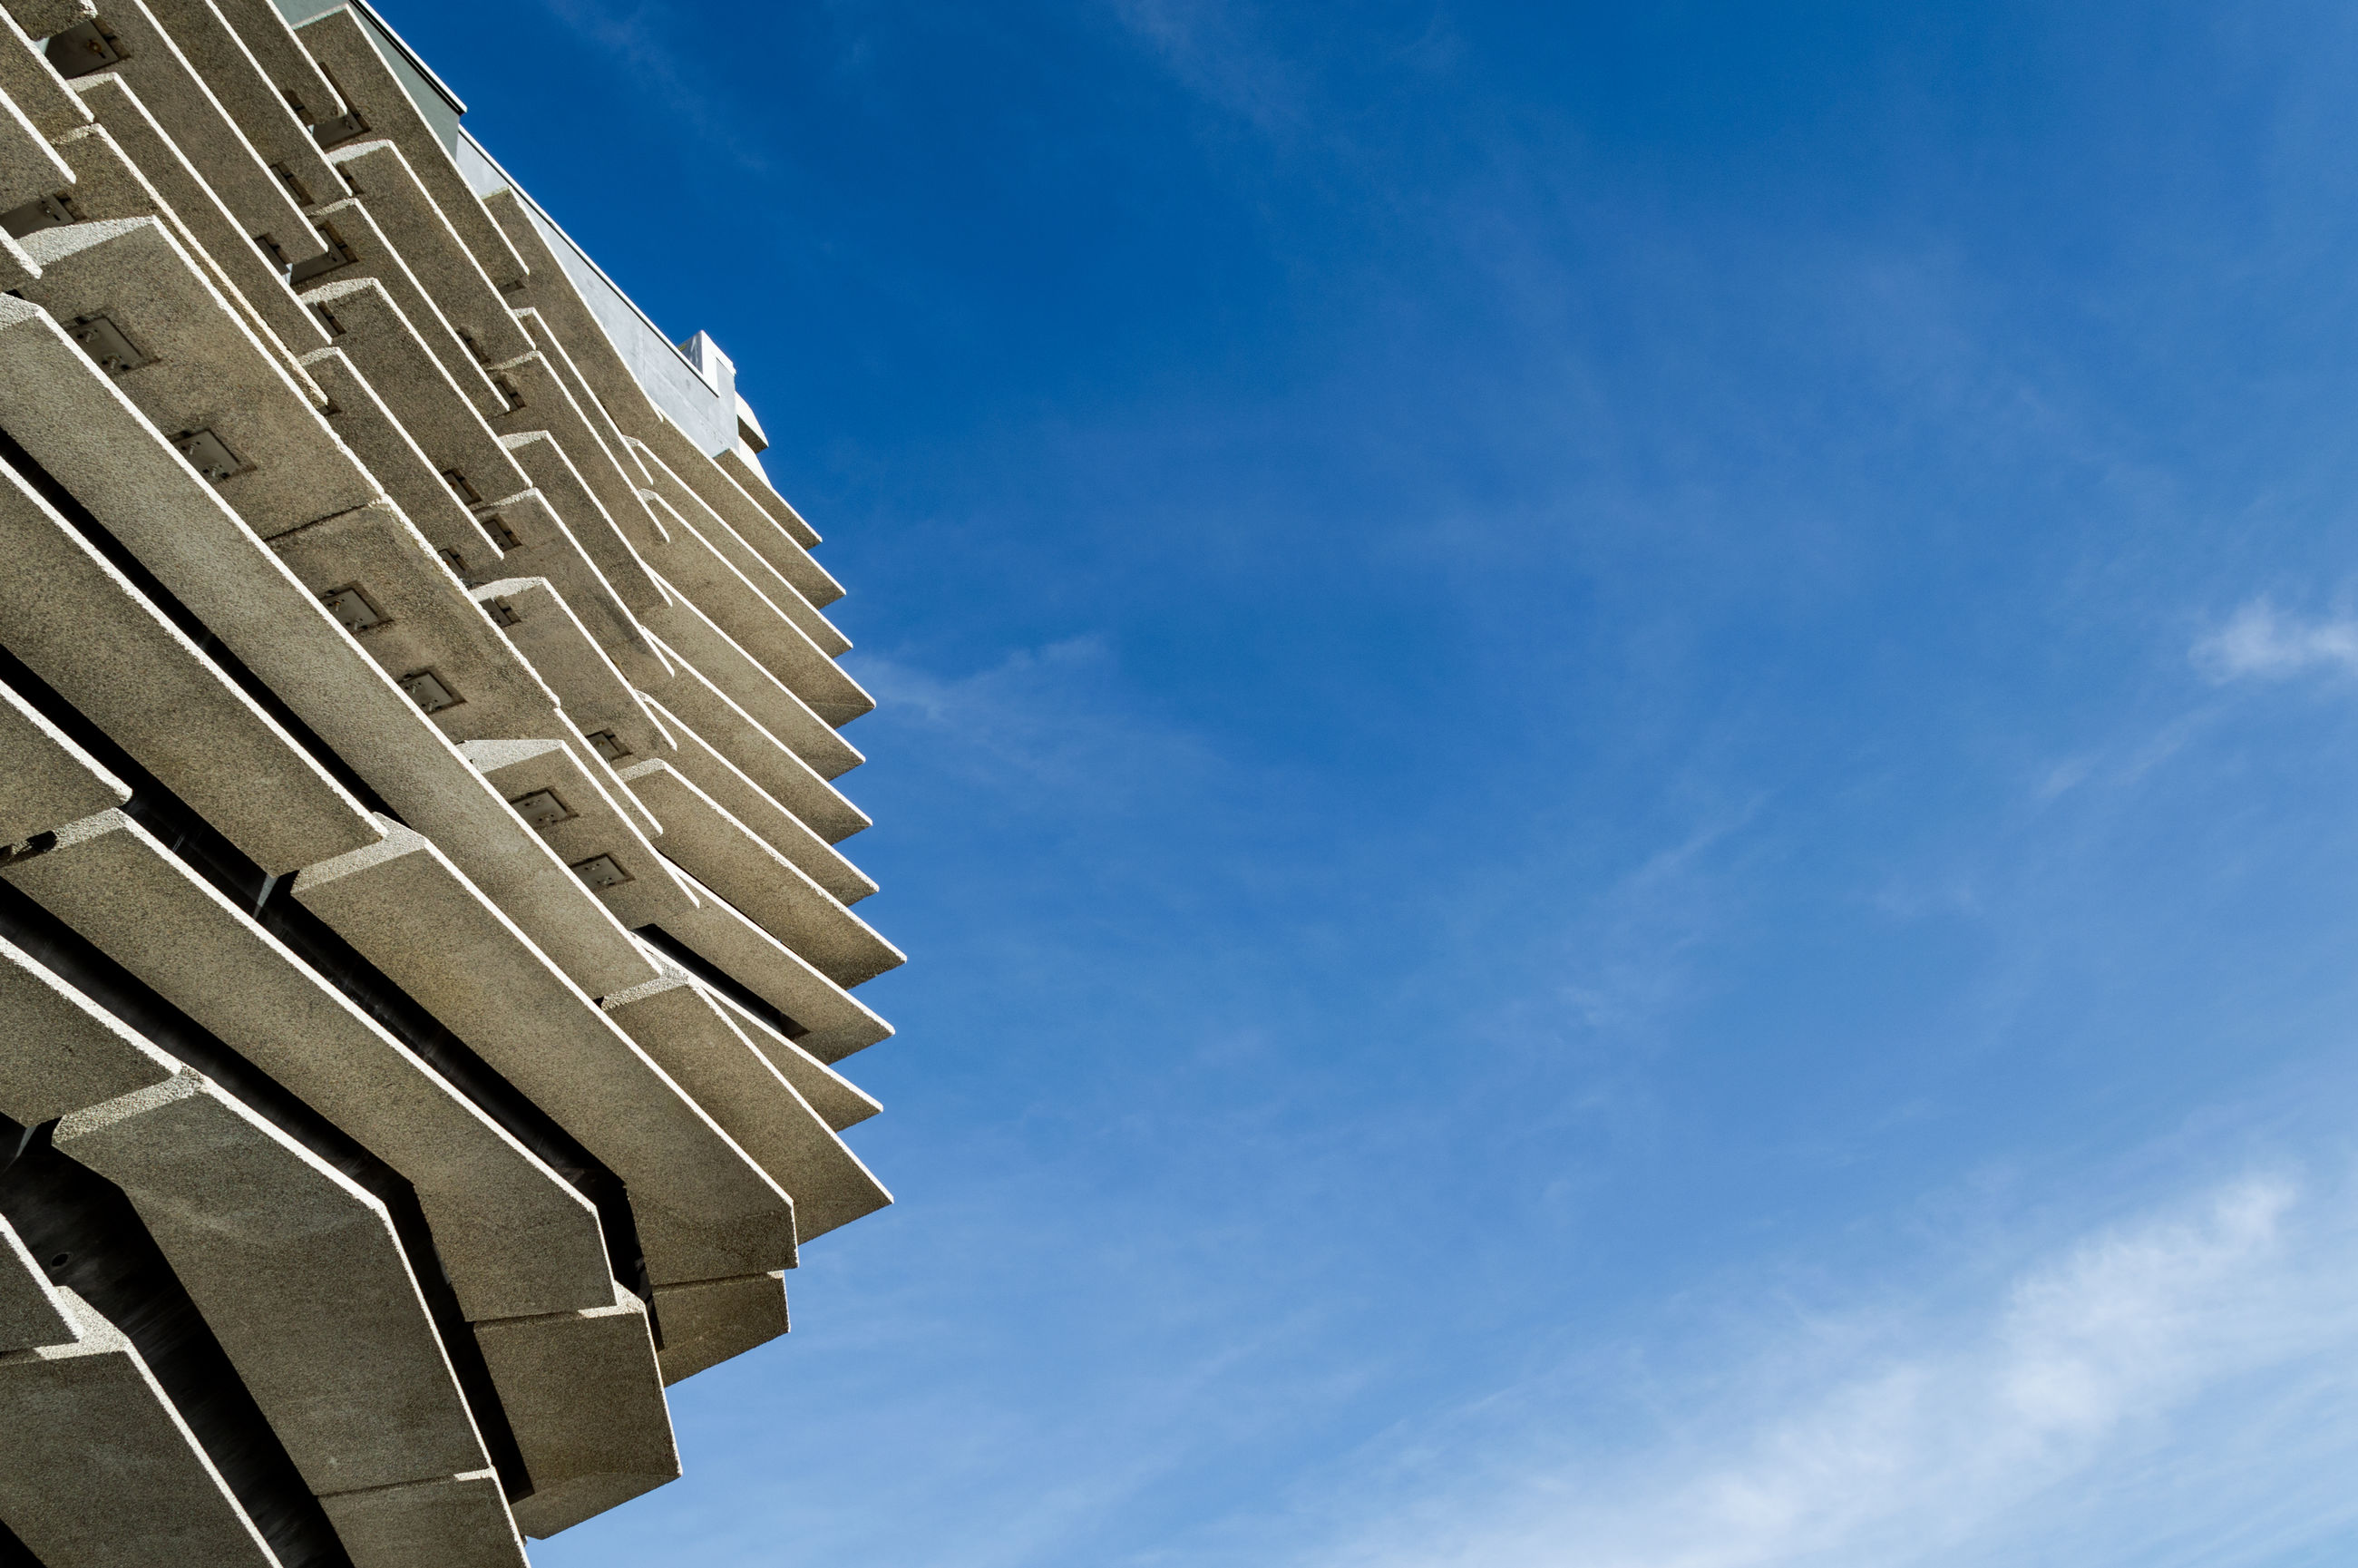 Abstract minimal architecture background photo, facade structures under blue sky at sunny day